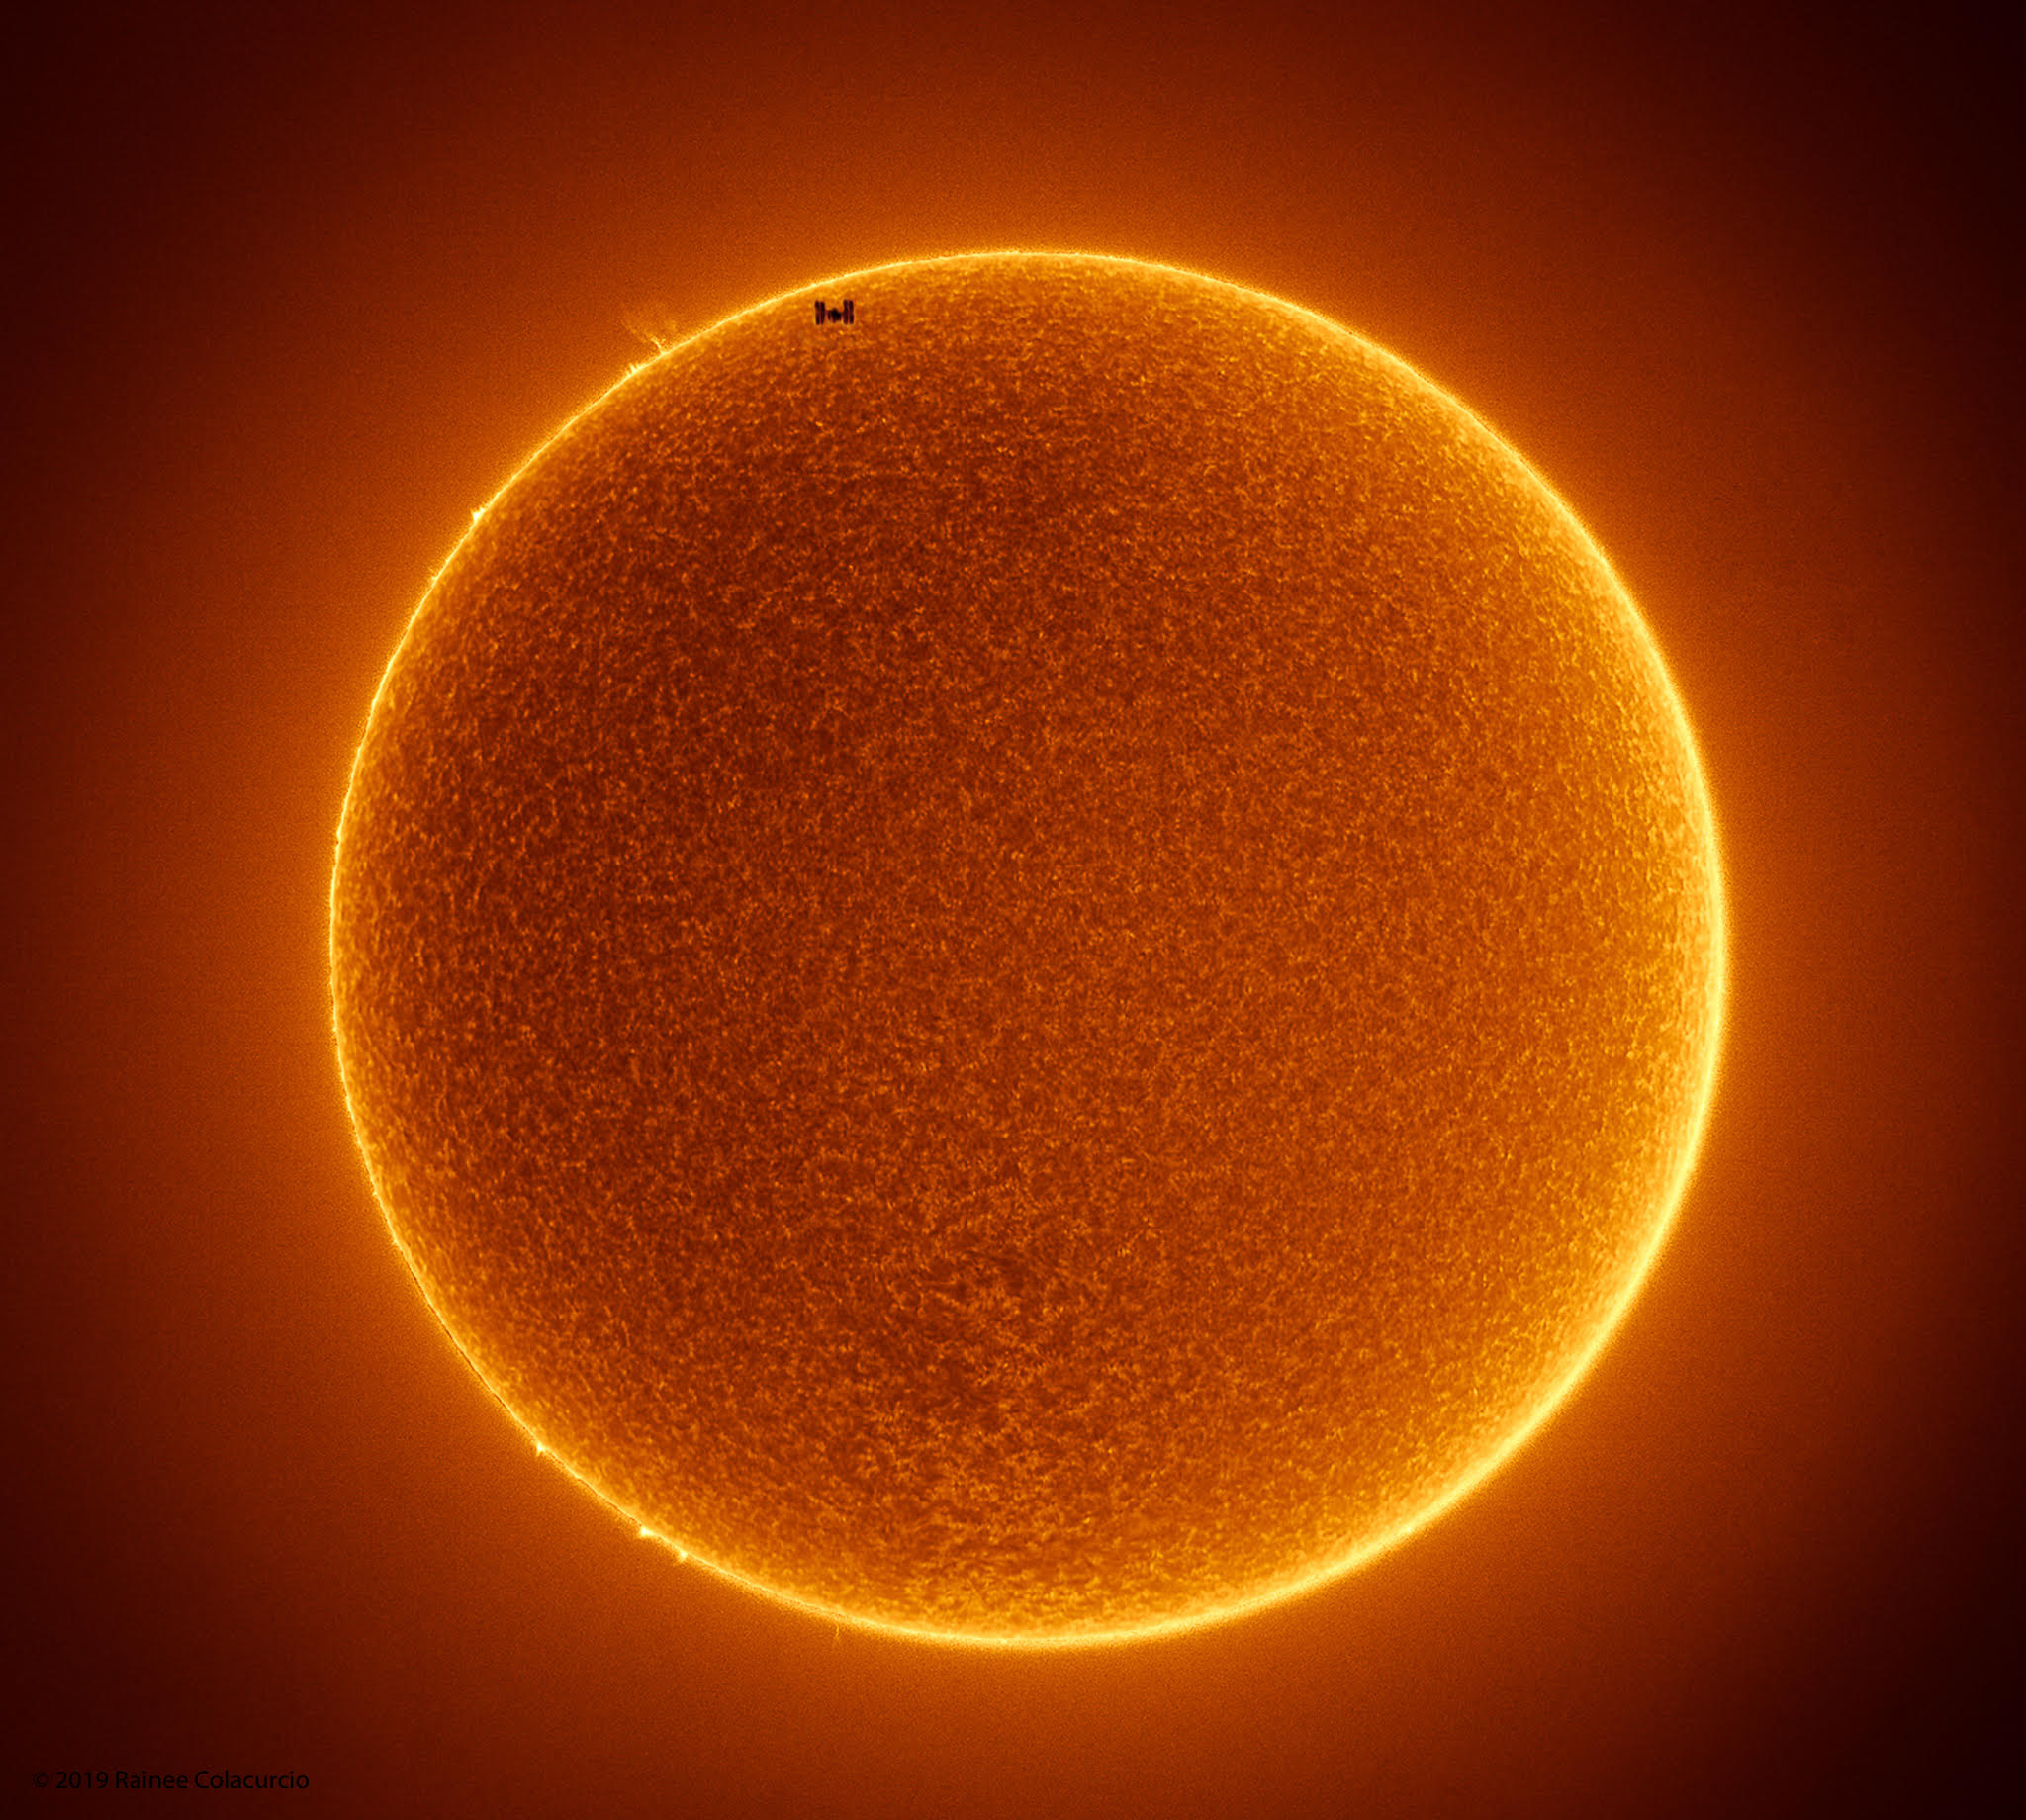 APOD: 2019 July 15 - The Space Station Crosses a Spotless Sun